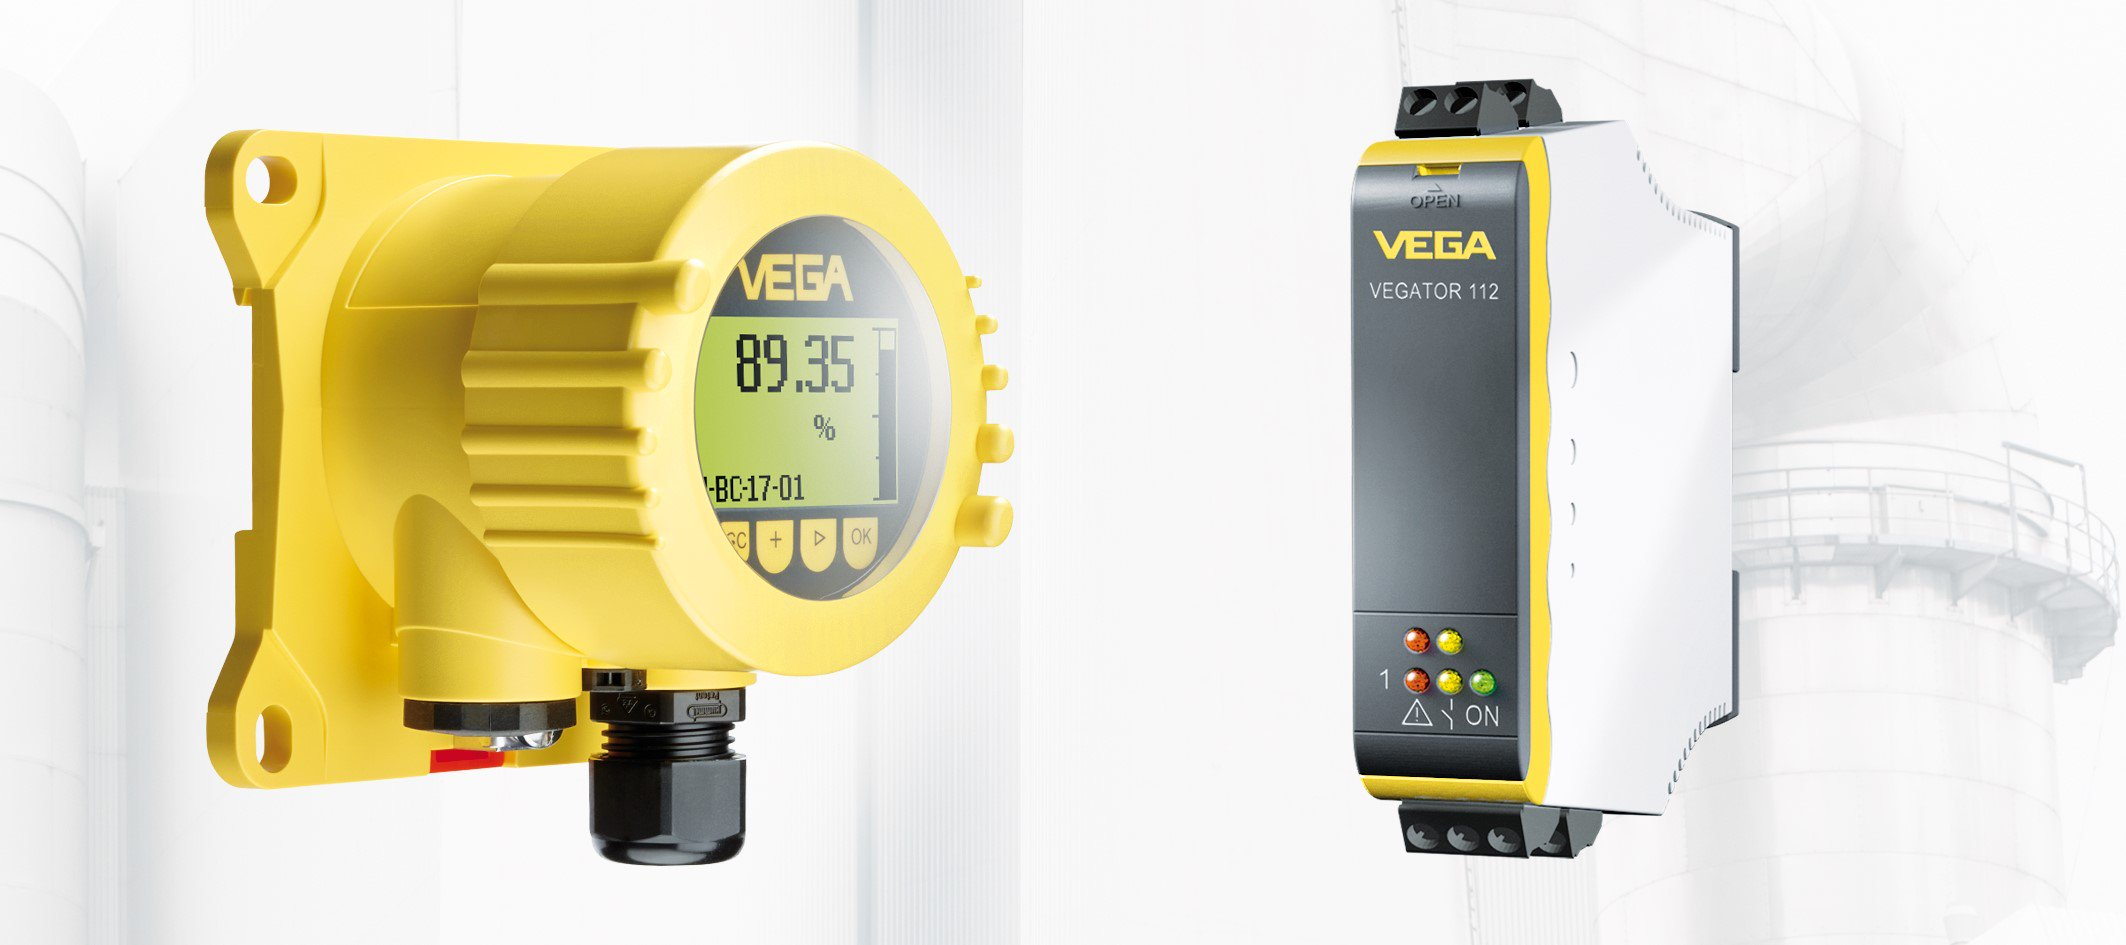 A VEGADIS and VEGATOR, VEGA signal conditioner and conditioner.